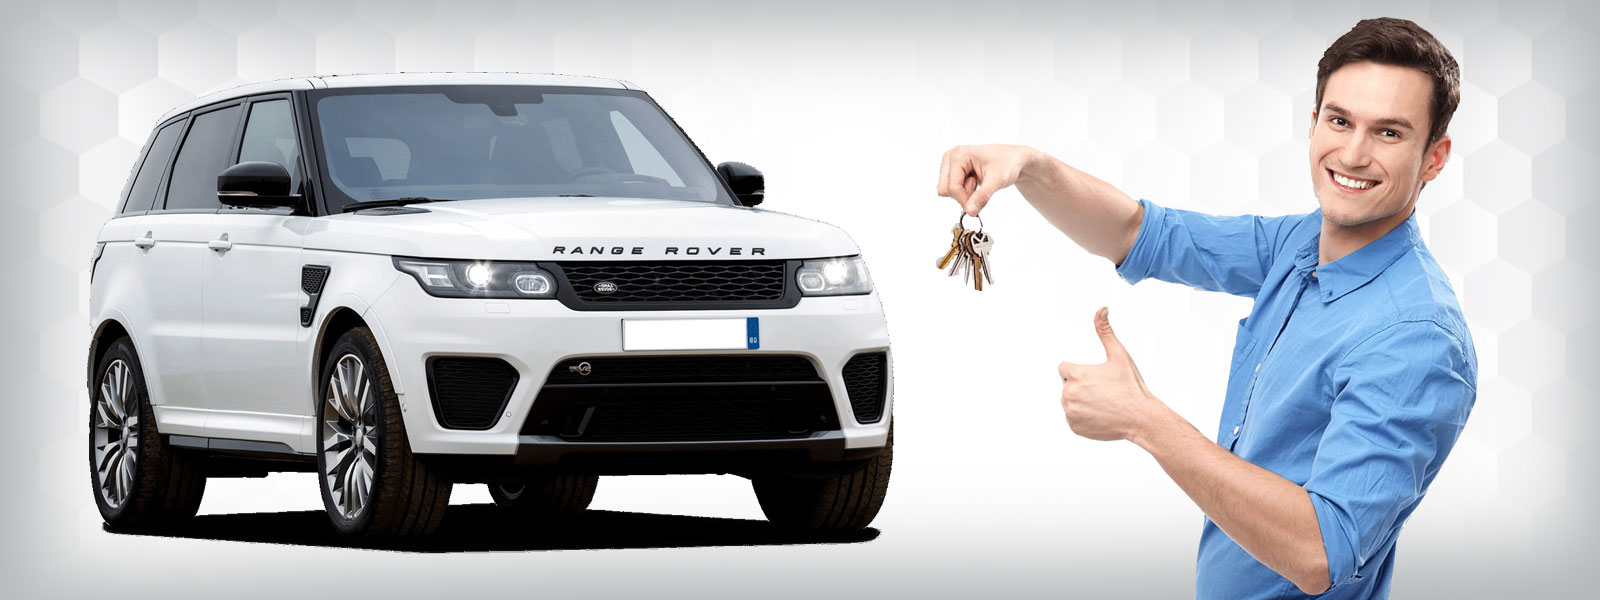 Car locksmiths Sydney